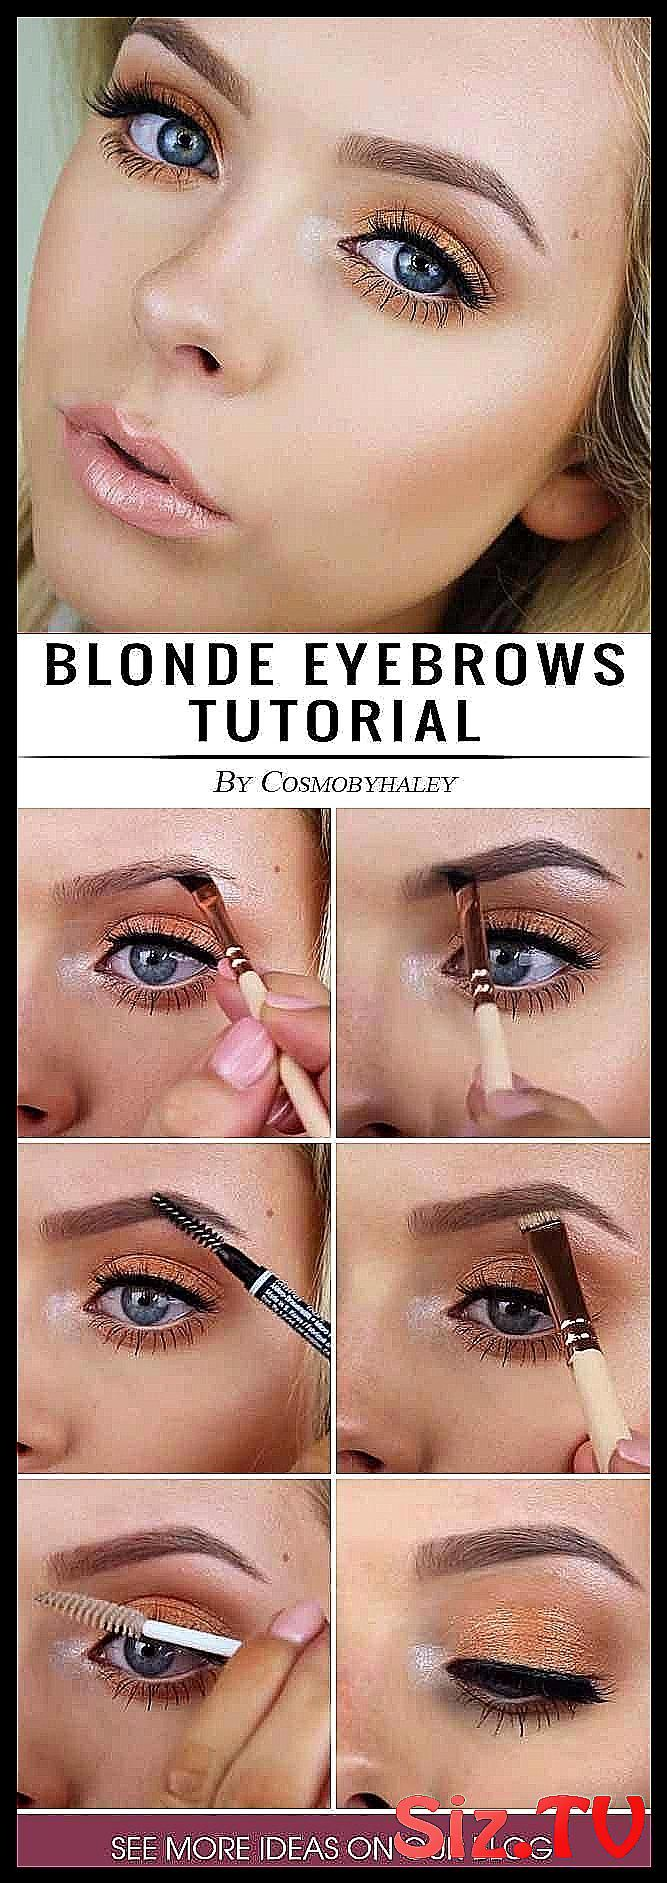 Blonde eyebrows may be not so easy to deal with bu